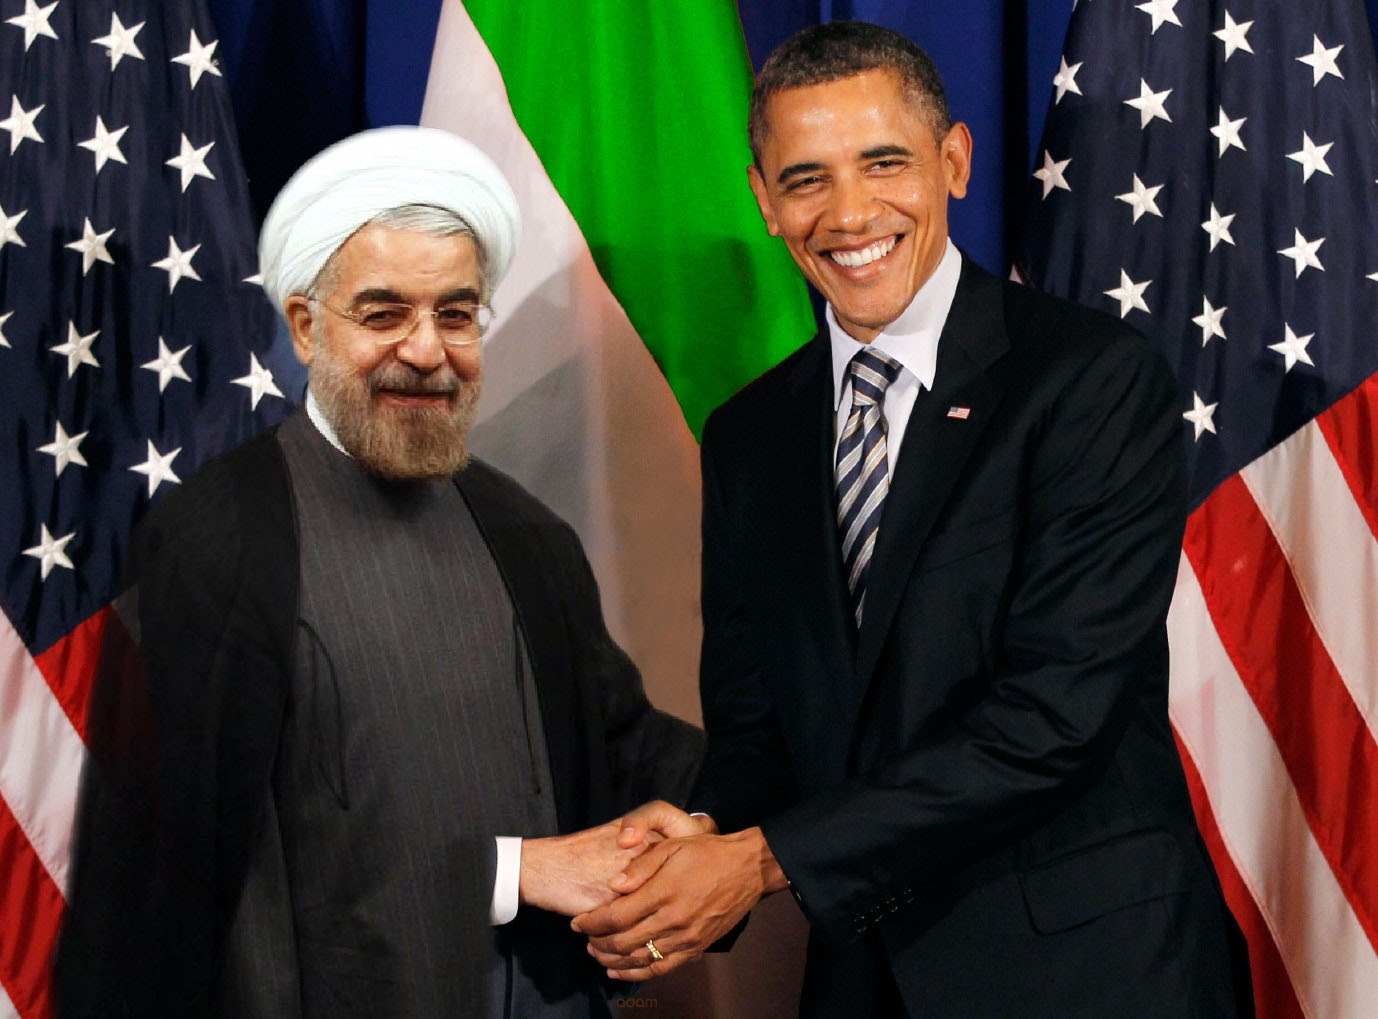 The fate of the Iran-America Nuclear deal continues to be uncertain